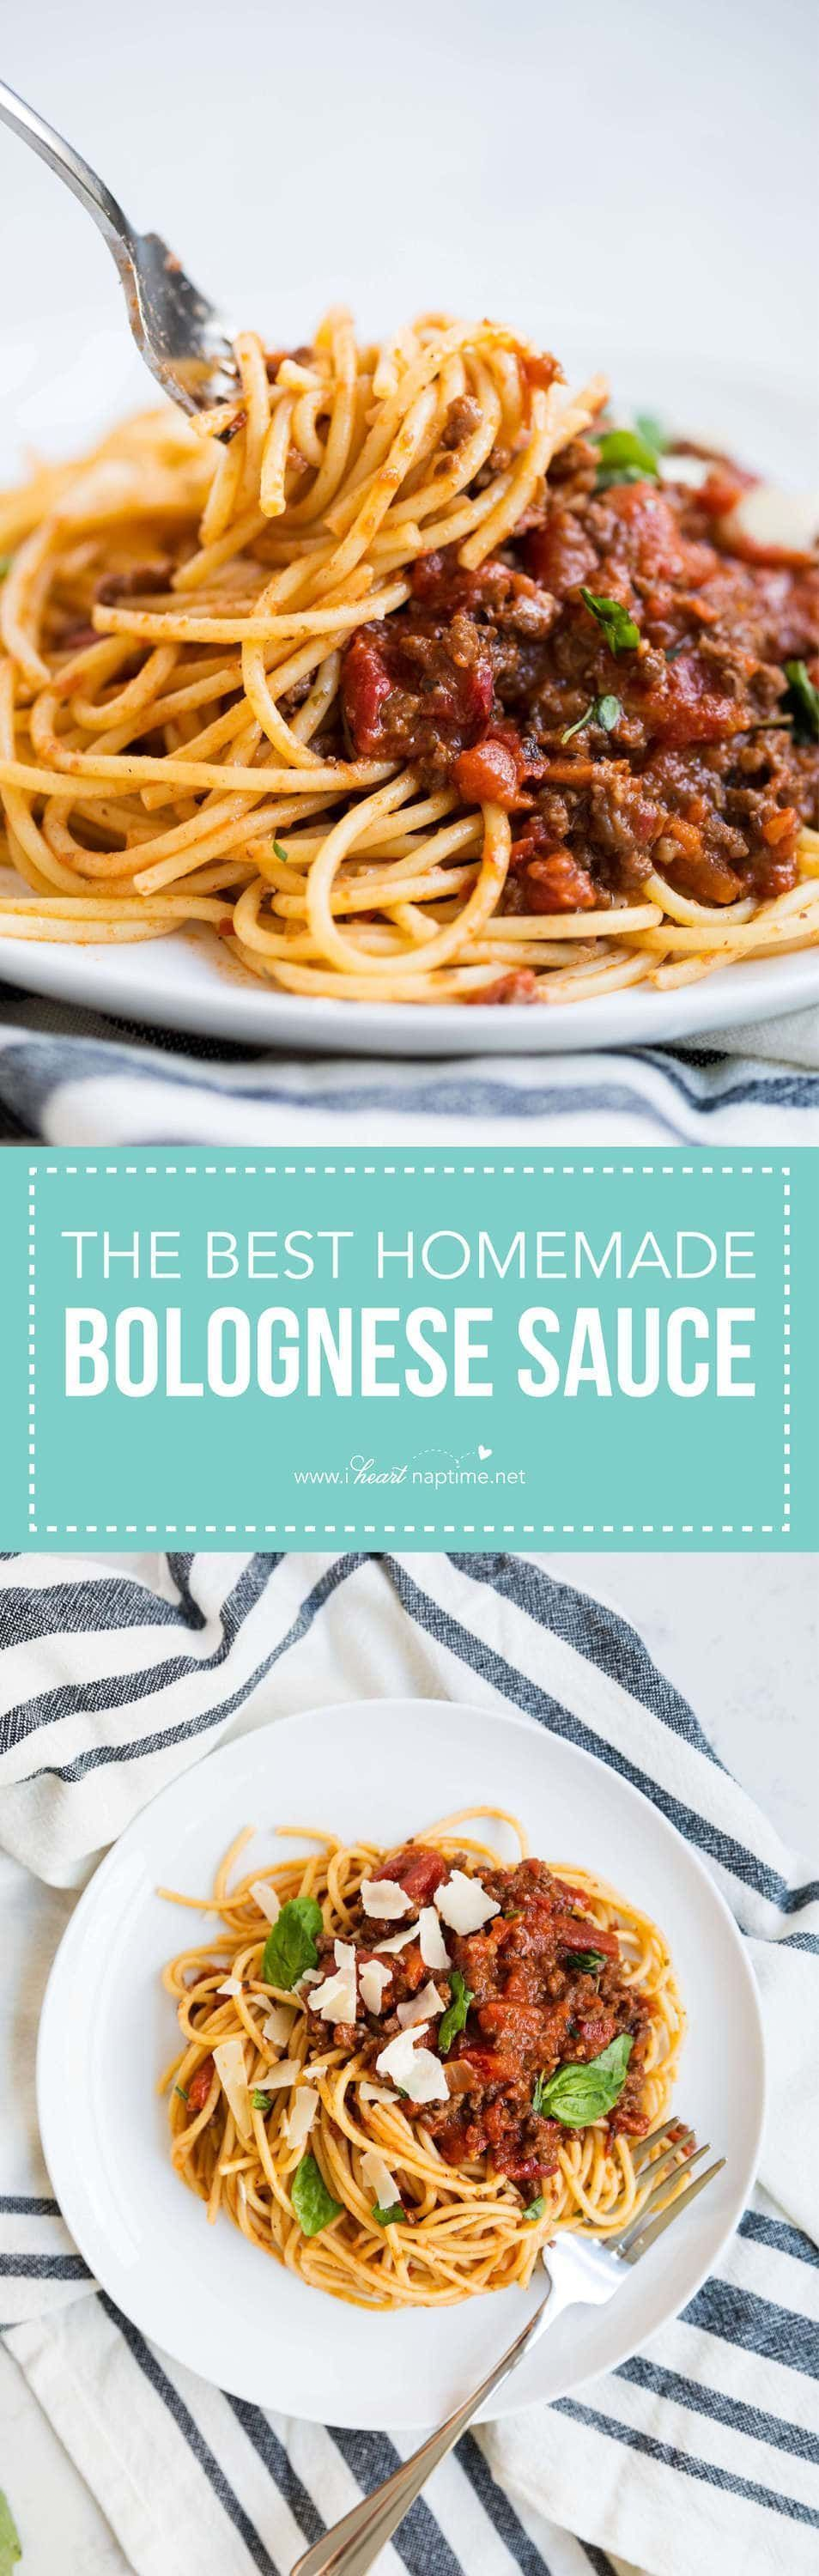 The BEST Homemade Bolognese Sauce #bolognesesauce Hands down the BEST homemade bolognese sauce ever! The flavors in this sauce are unreal and it will soon become your new go to sauce for pasta night! #bolognesesauce The BEST Homemade Bolognese Sauce #bolognesesauce Hands down the BEST homemade bolognese sauce ever! The flavors in this sauce are unreal and it will soon become your new go to sauce for pasta night! #bolognesesauce The BEST Homemade Bolognese Sauce #bolognesesauce Hands down the BES #bolognesesauce